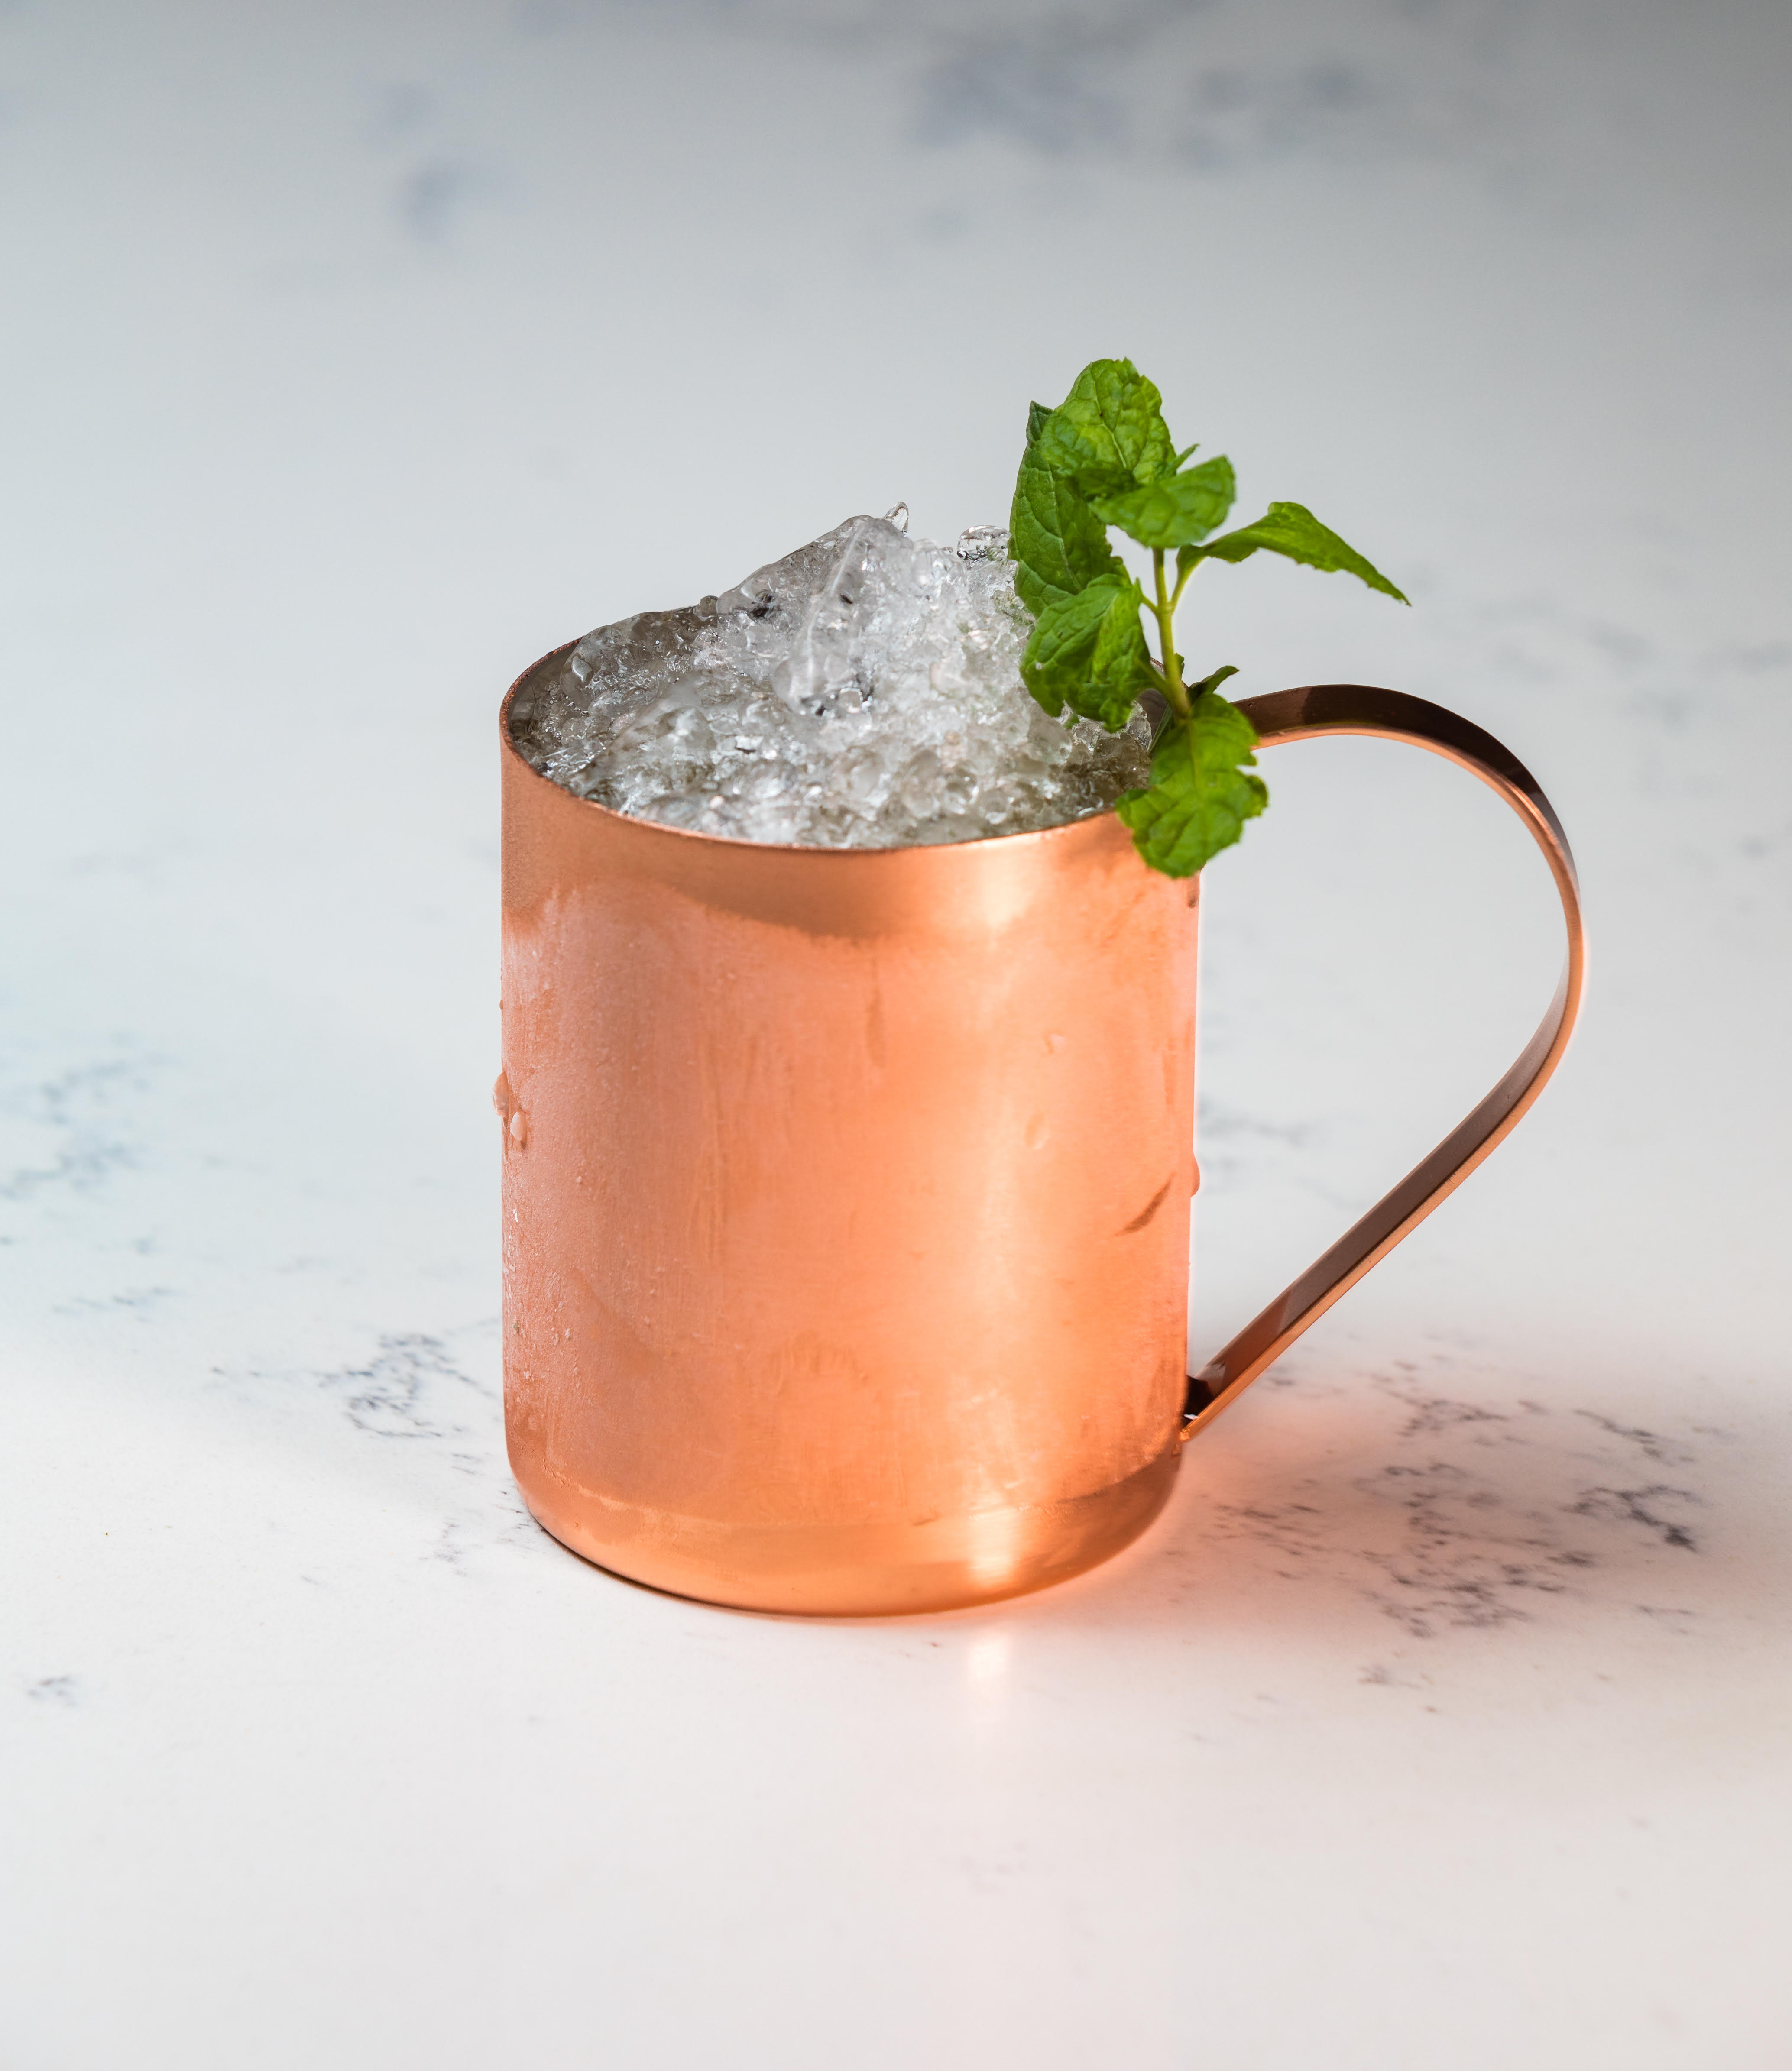 A frosted copper Moscow Mule mug contains a drink topped with ice and a sprig of green leaves.